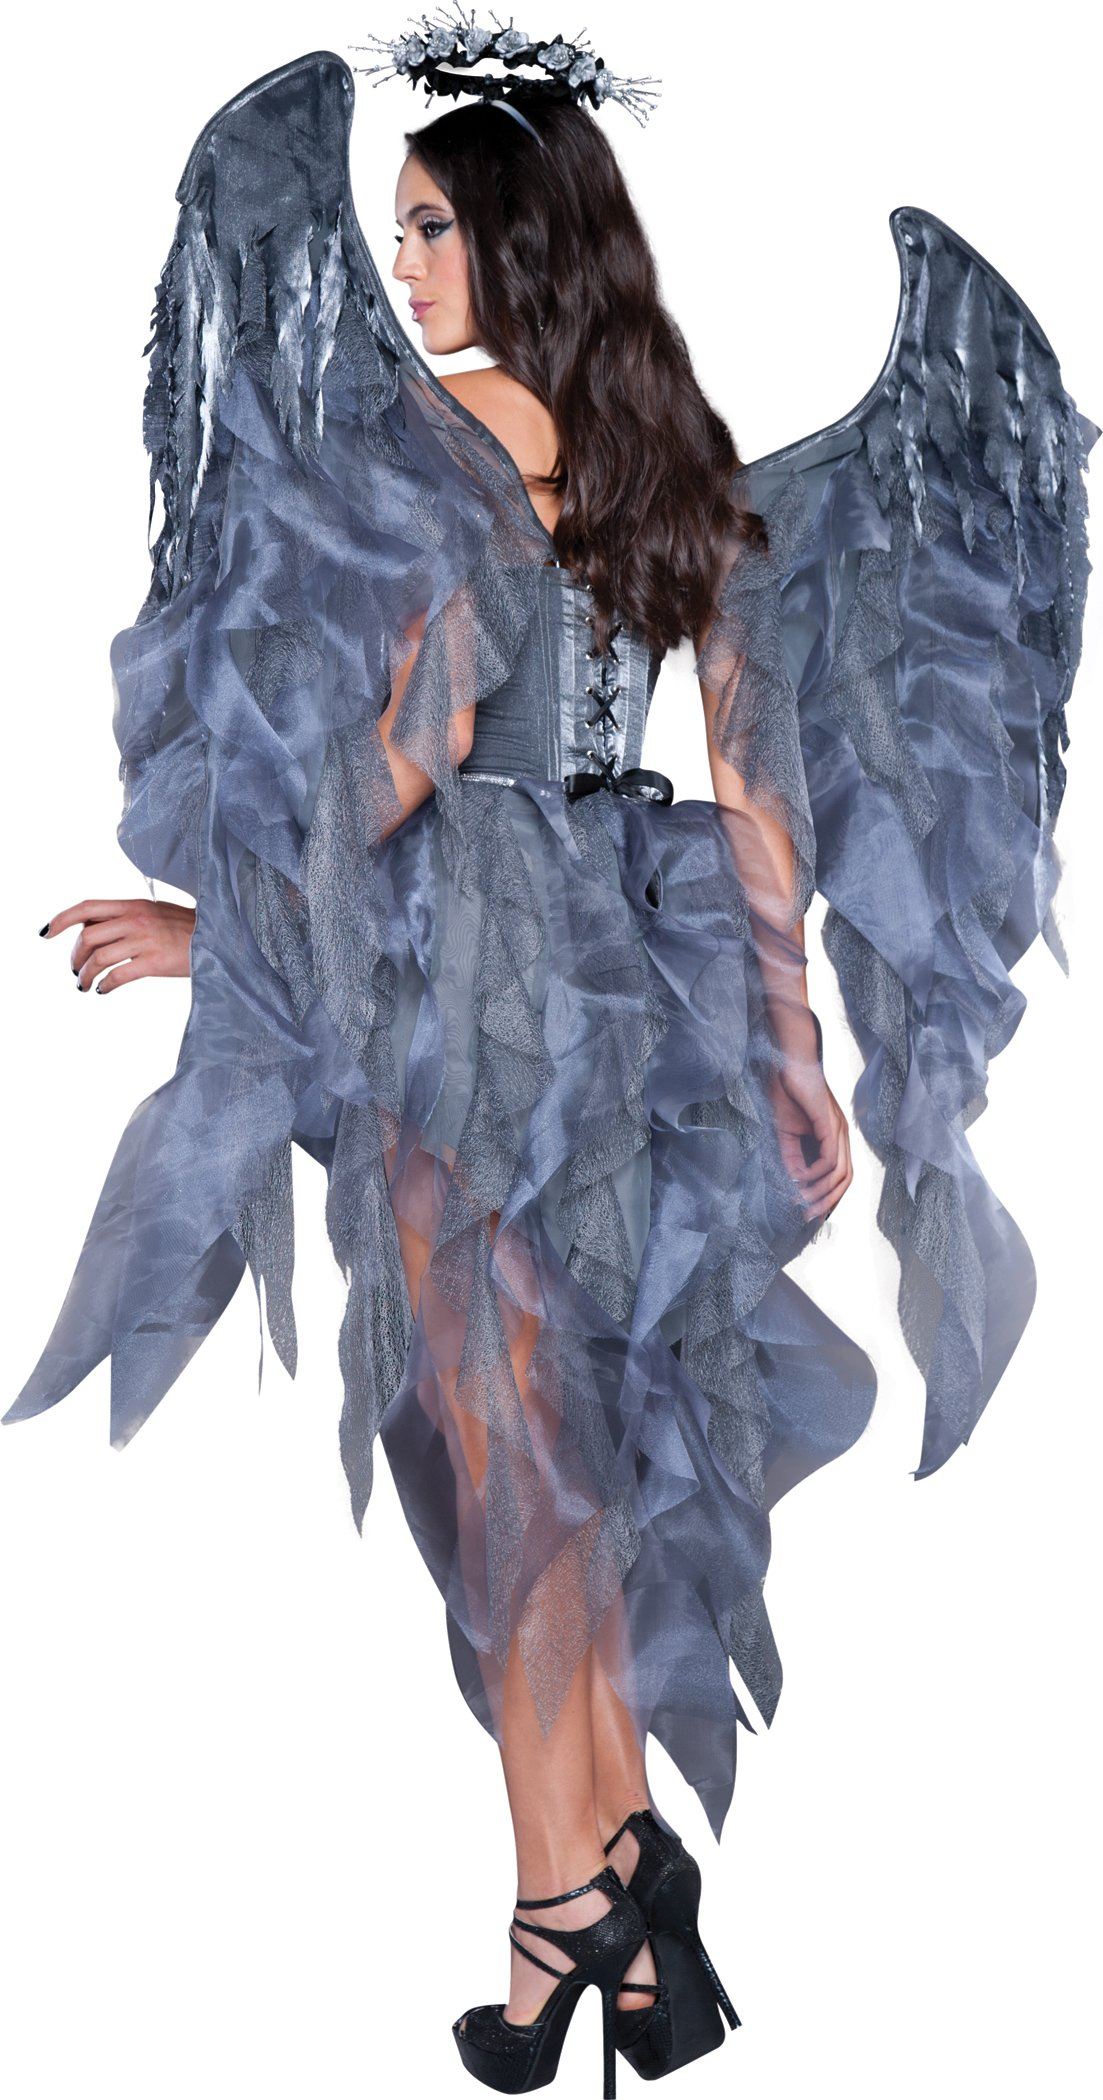 InCharacter Costumes Women's Dark Angel's Desire Costume, Grey/Silver, Medium by Fun World (Image #2)